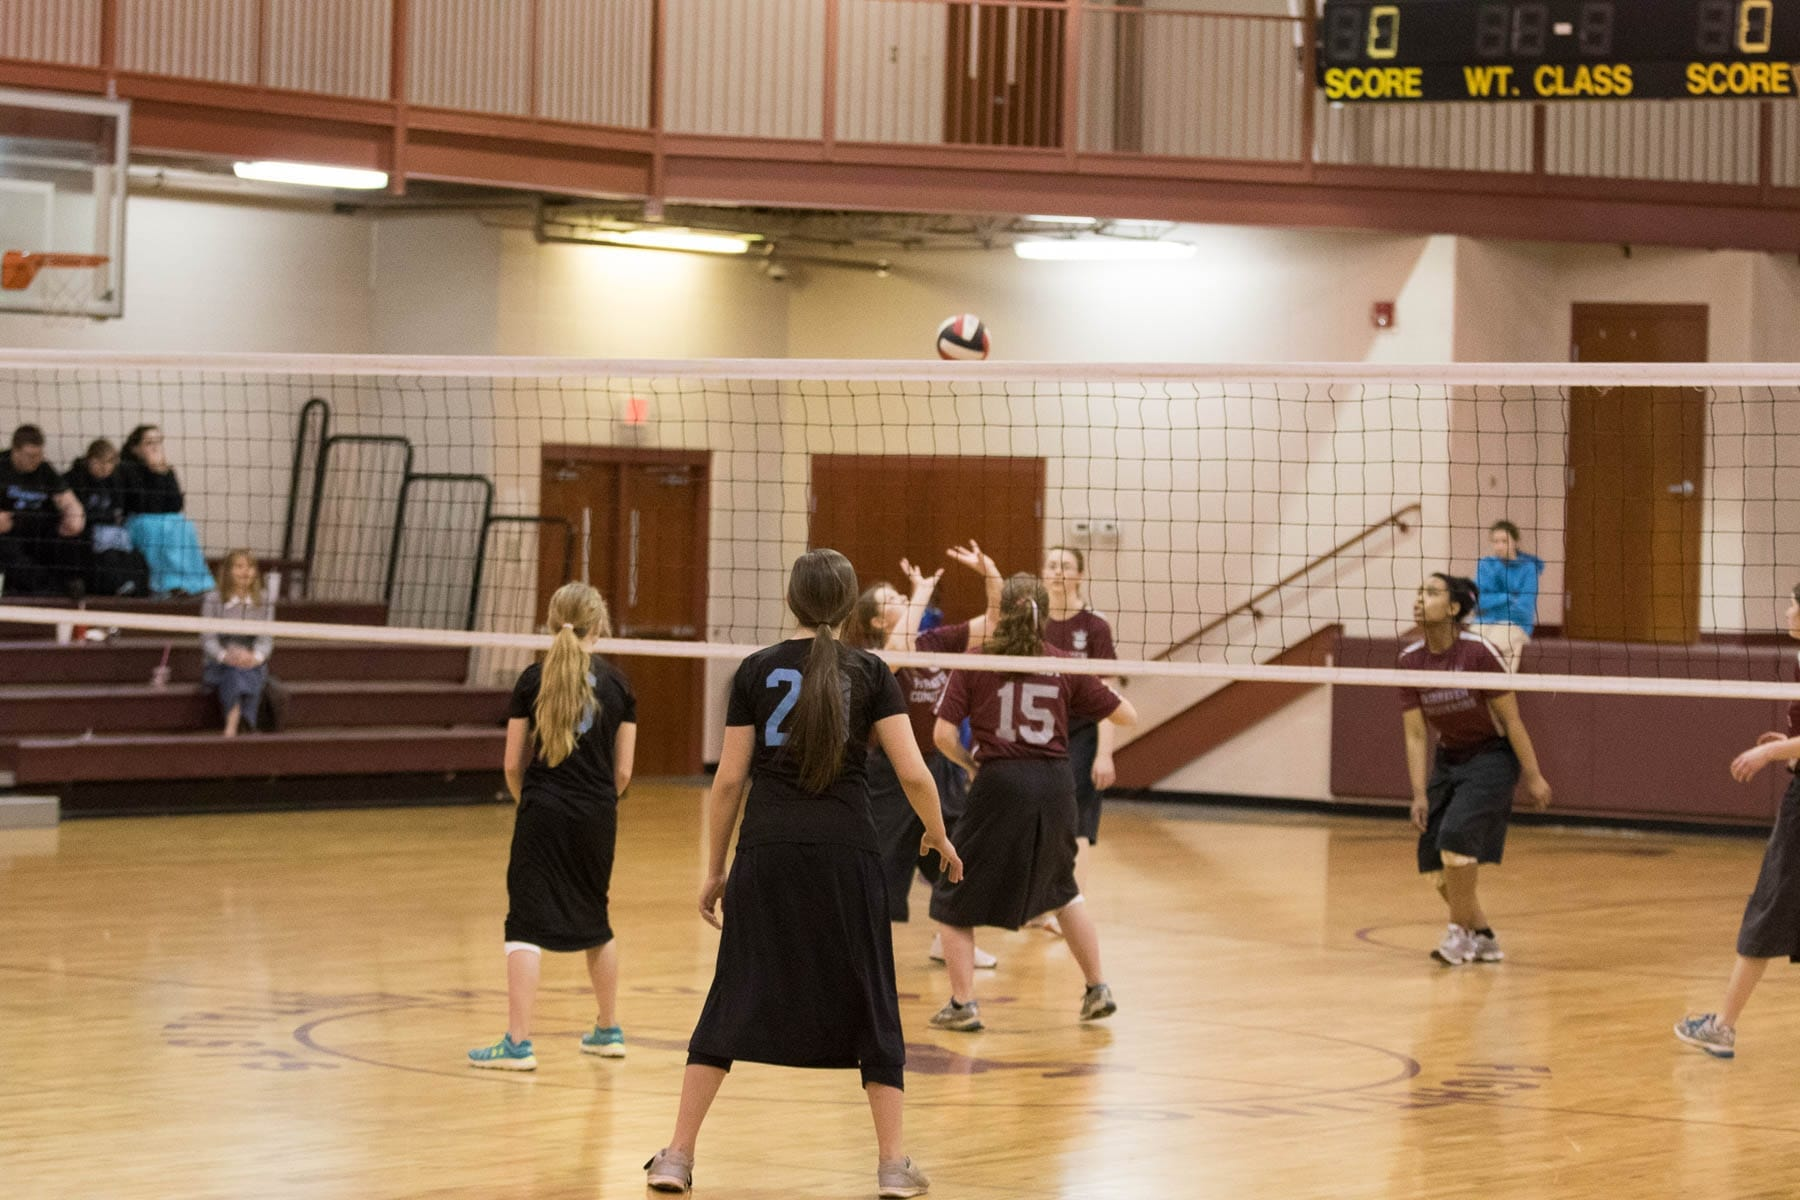 Fairhaven Baptist Academy Volleyball Basketball Tournament 2016 (35 of 40)